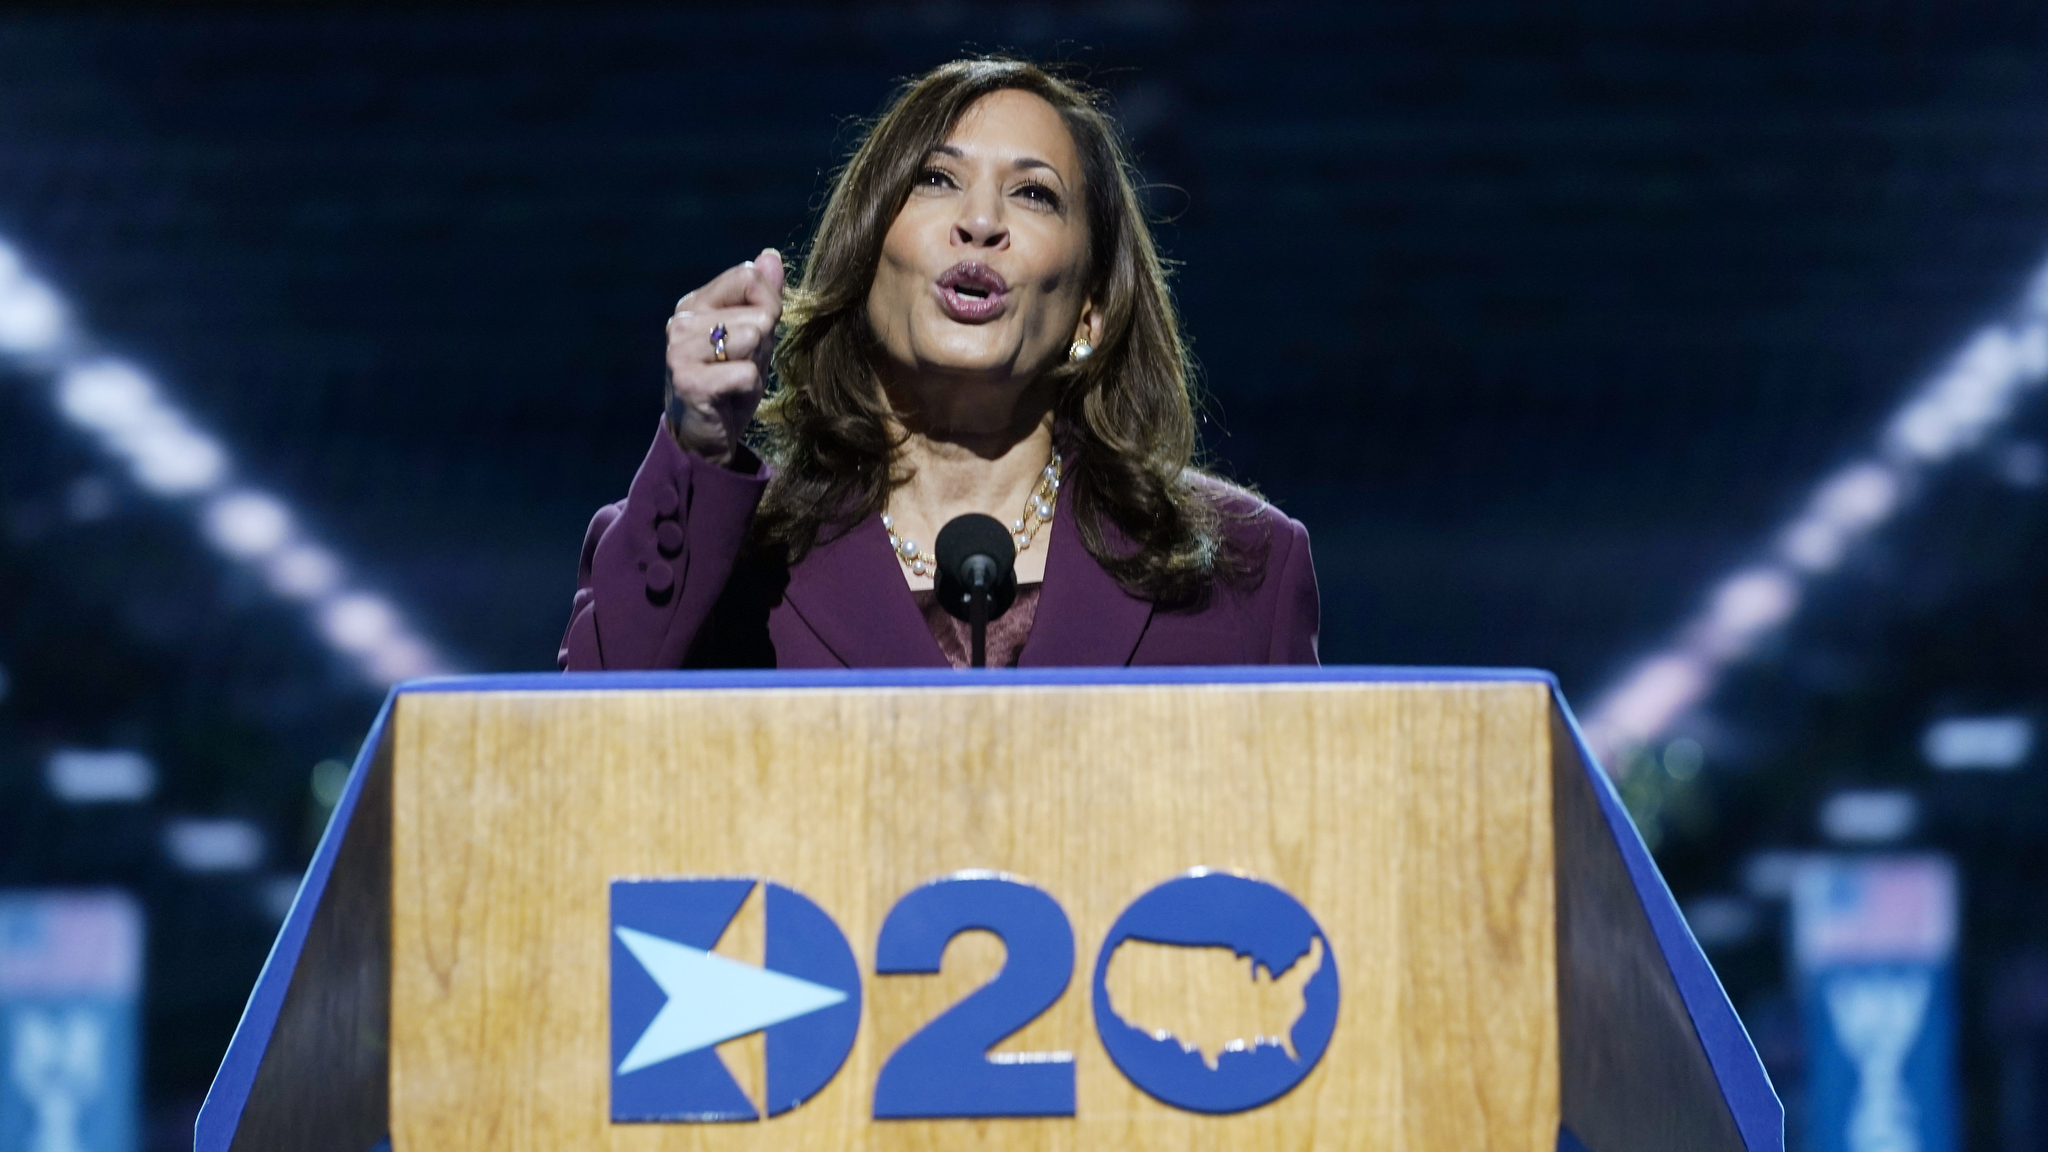 Democratic vice presidential candidate Sen. Kamala Harris at the Democratic National Convention, Wednesday, Aug. 19, 2020.